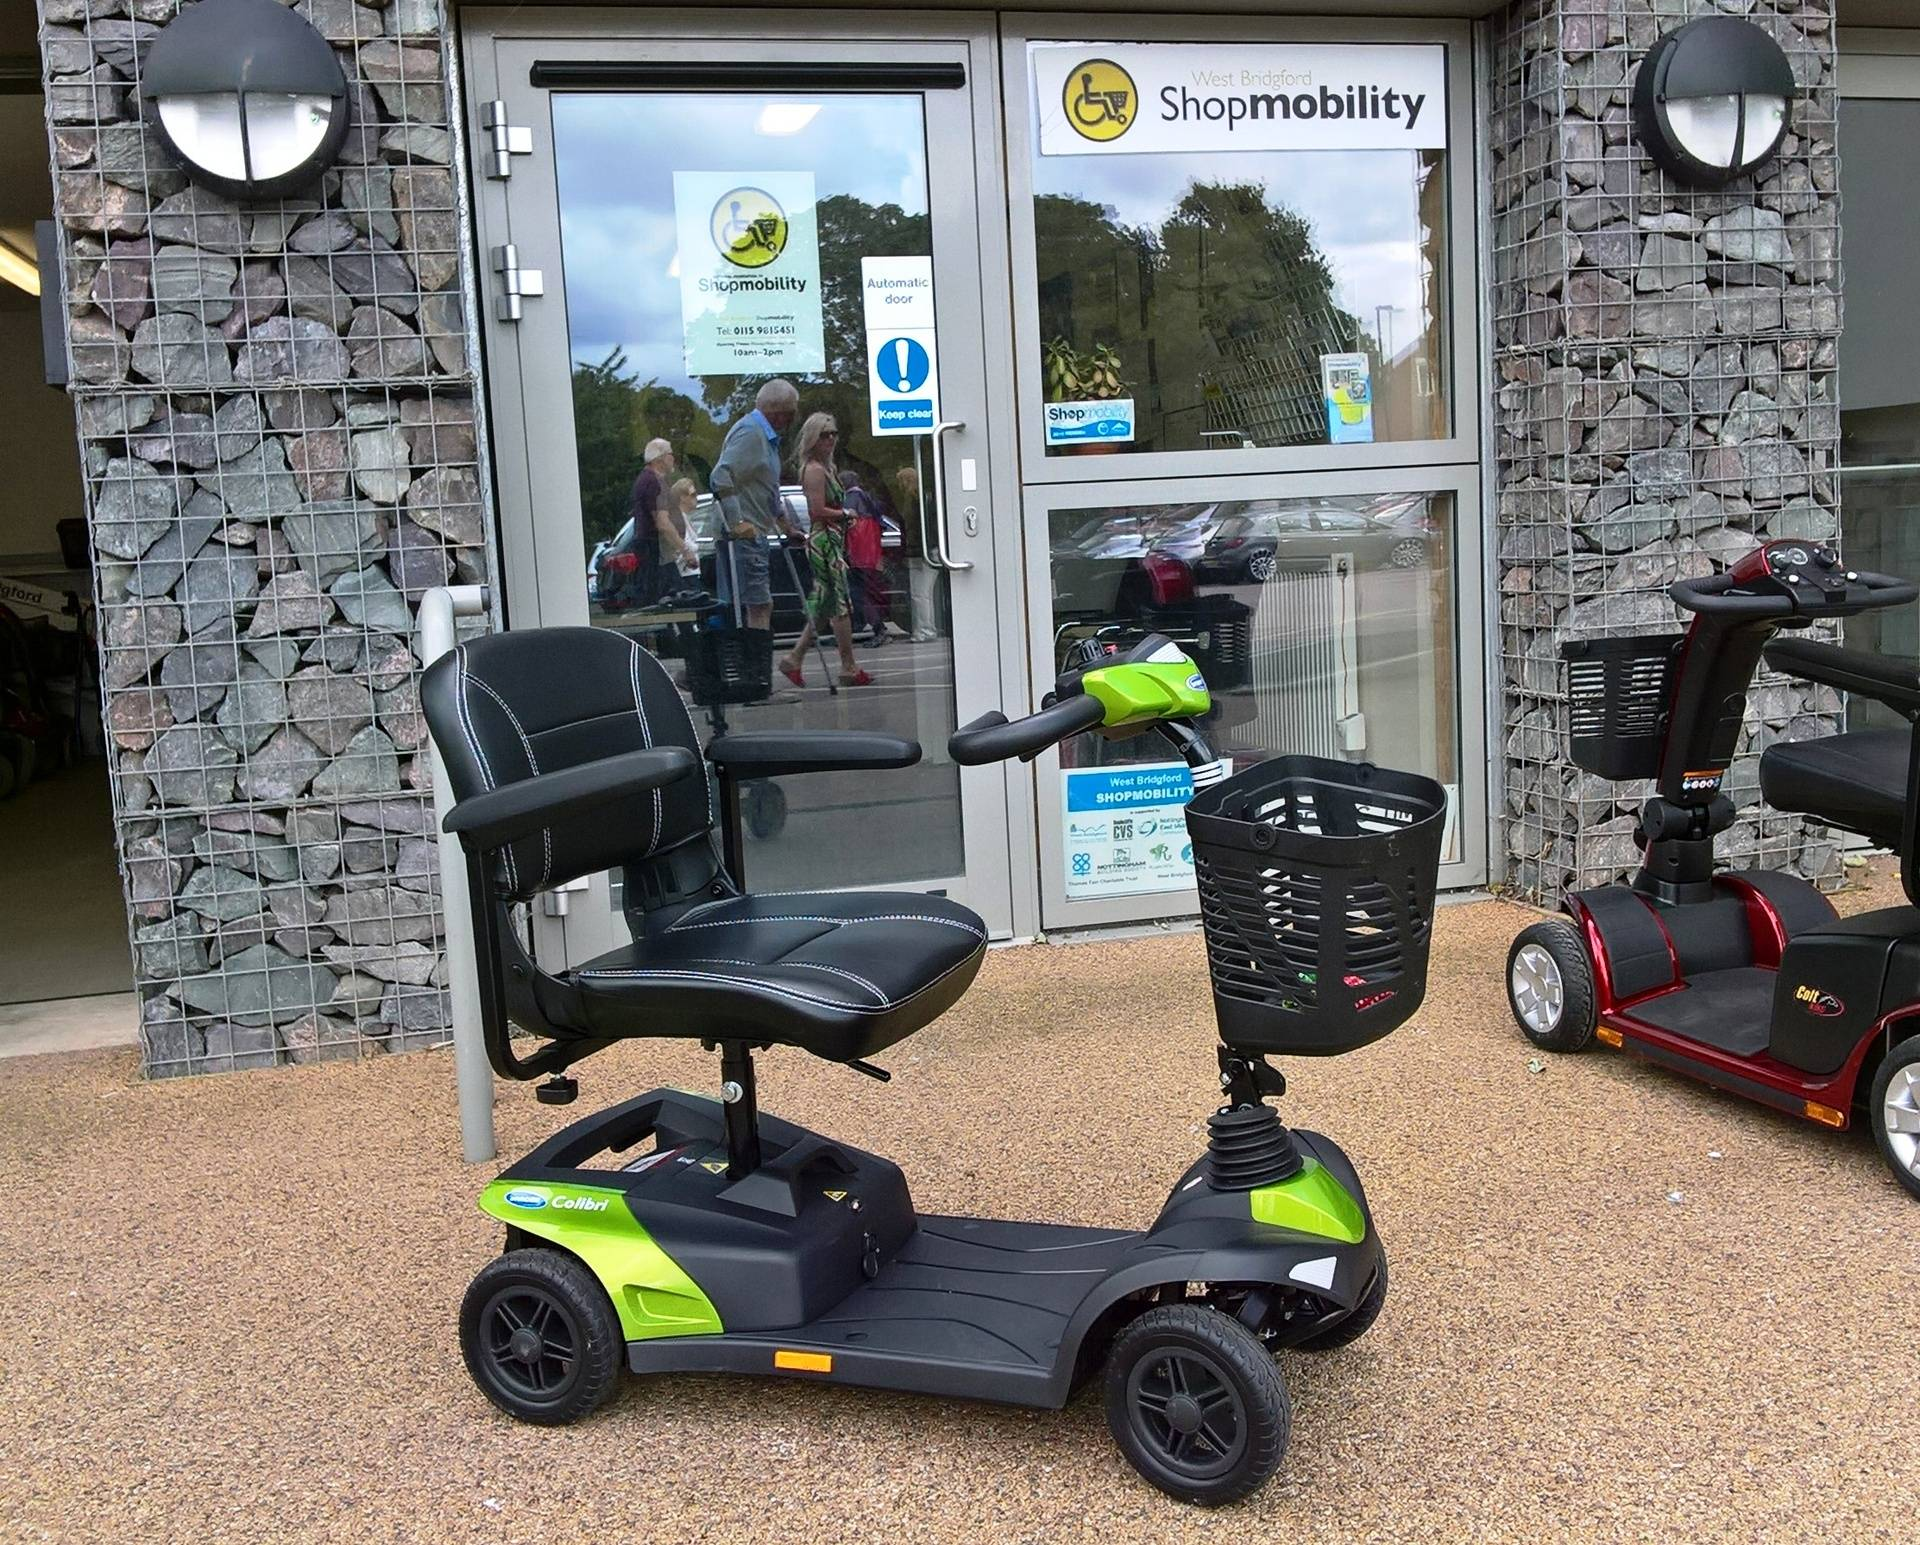 Short-term hire scooter